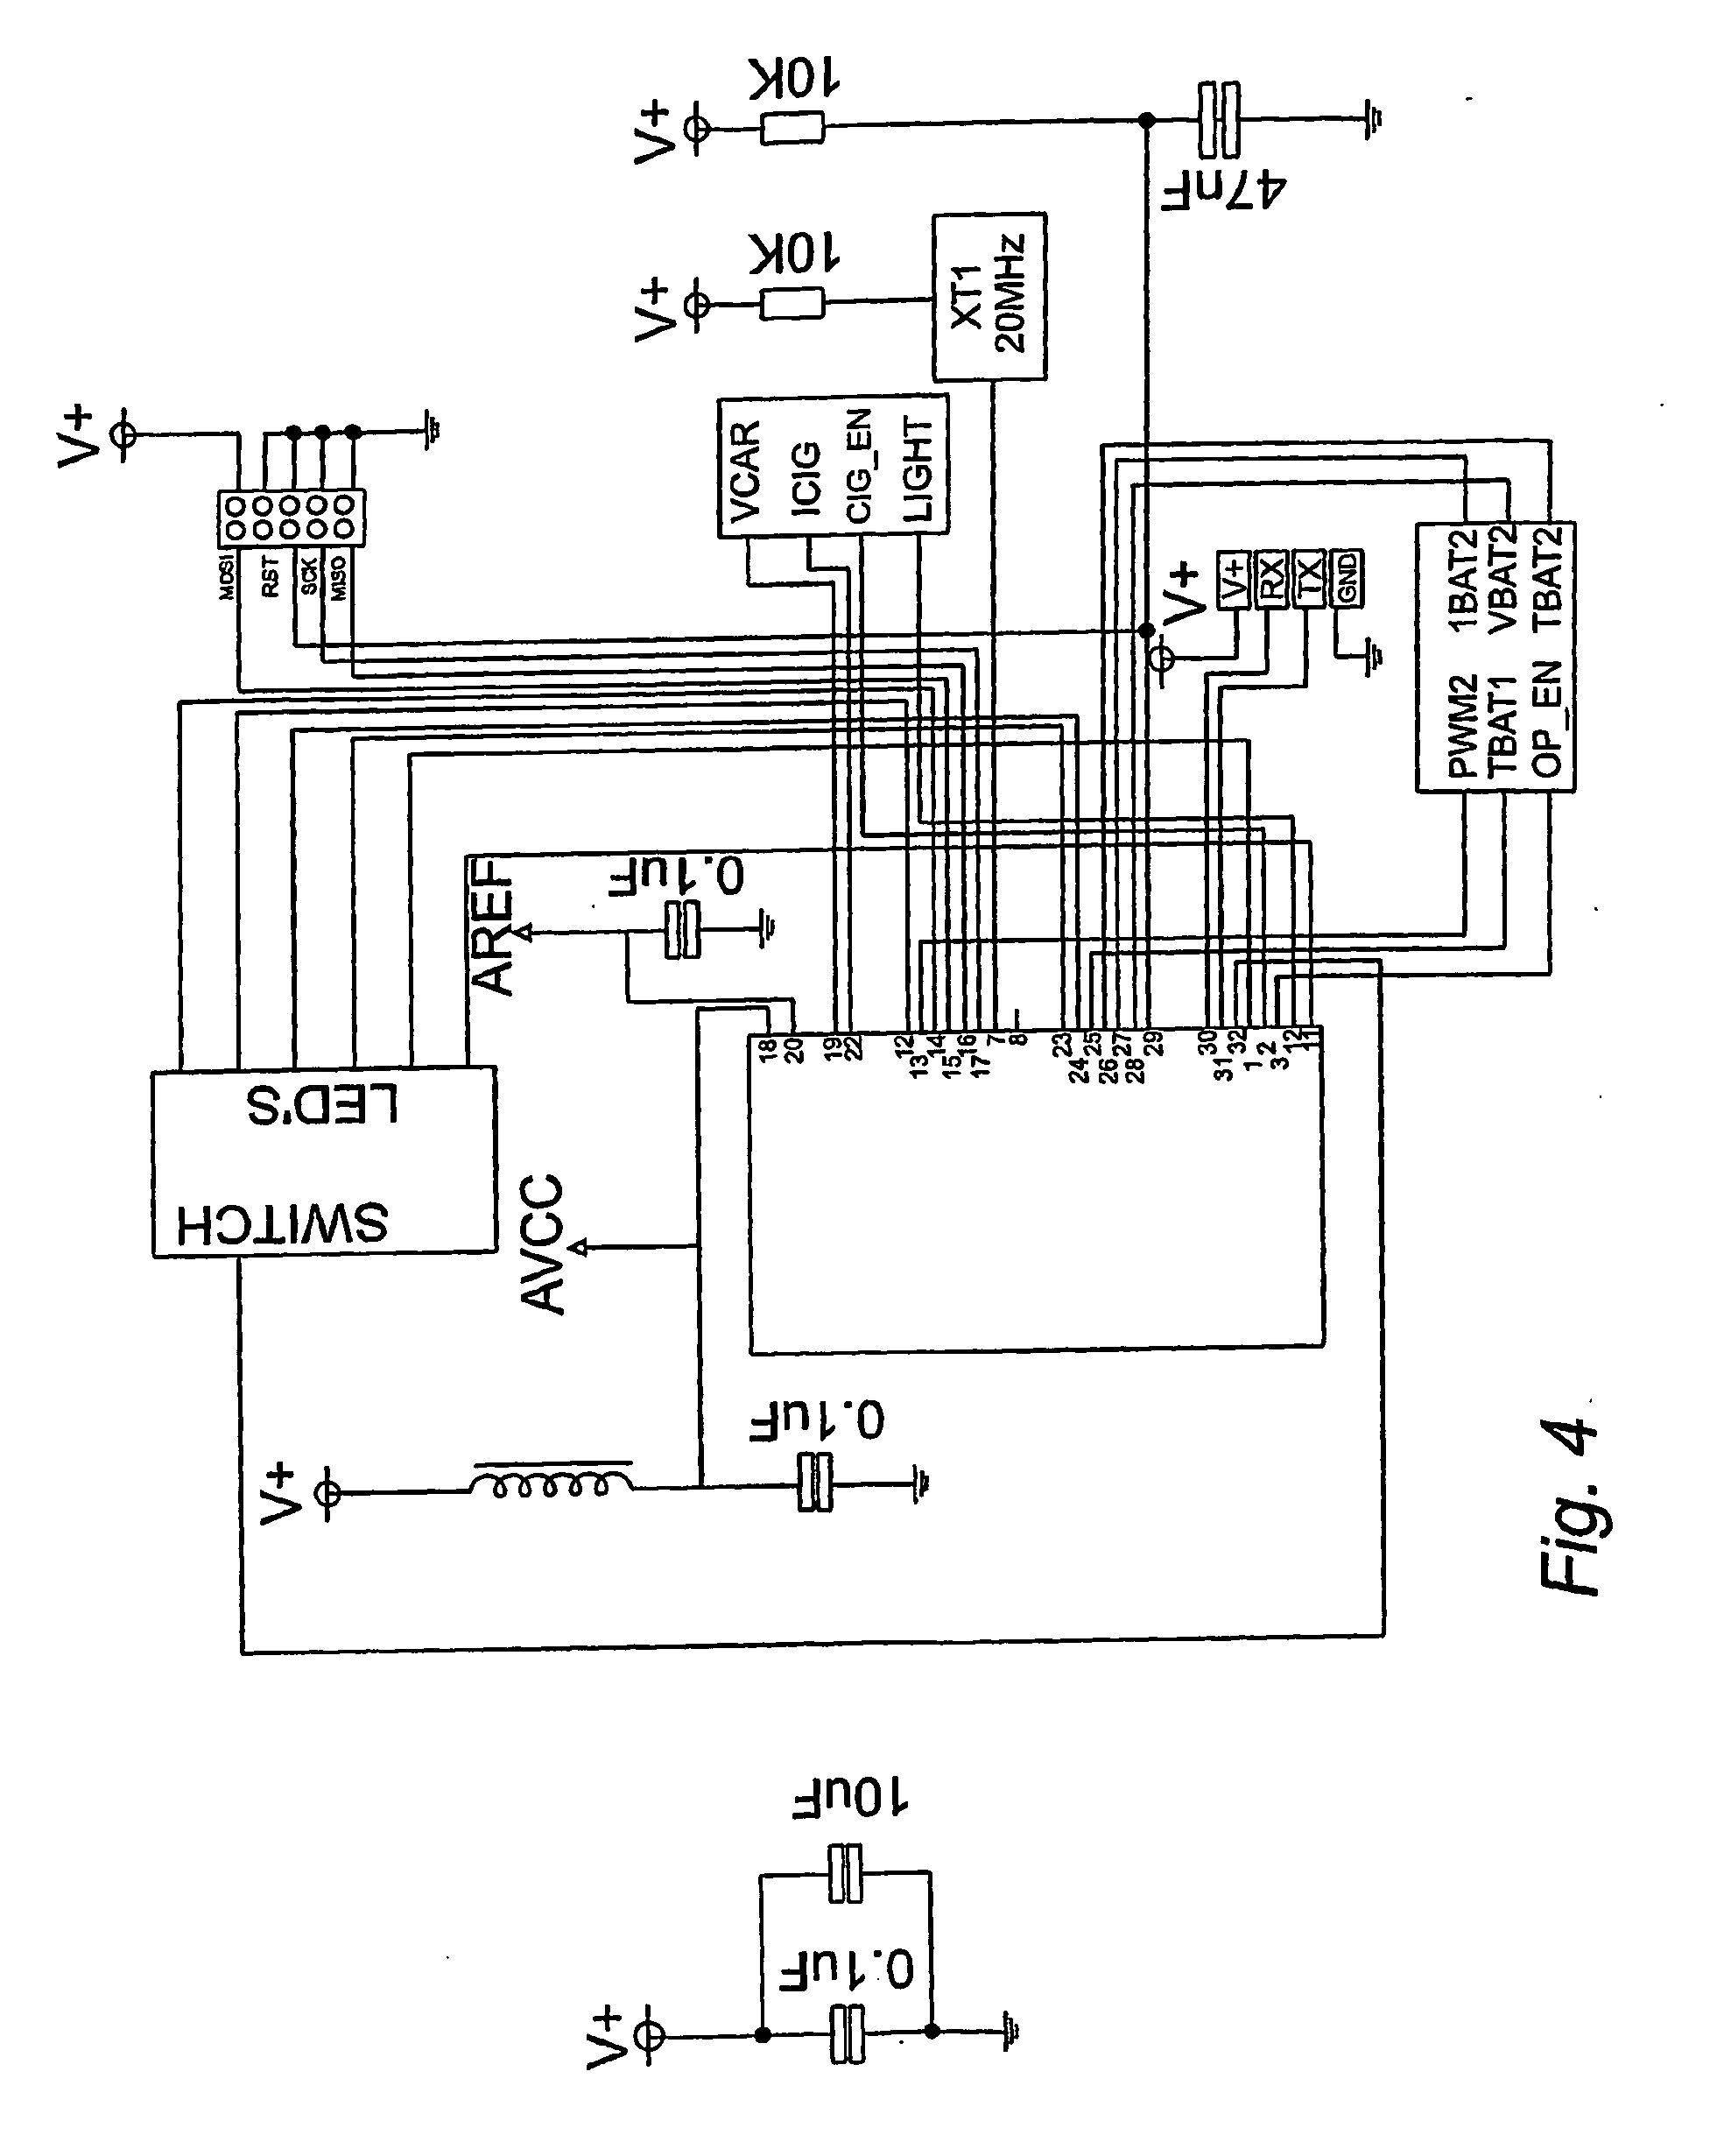 Wiring Diagram For 1996 Ezgo Golf Cart